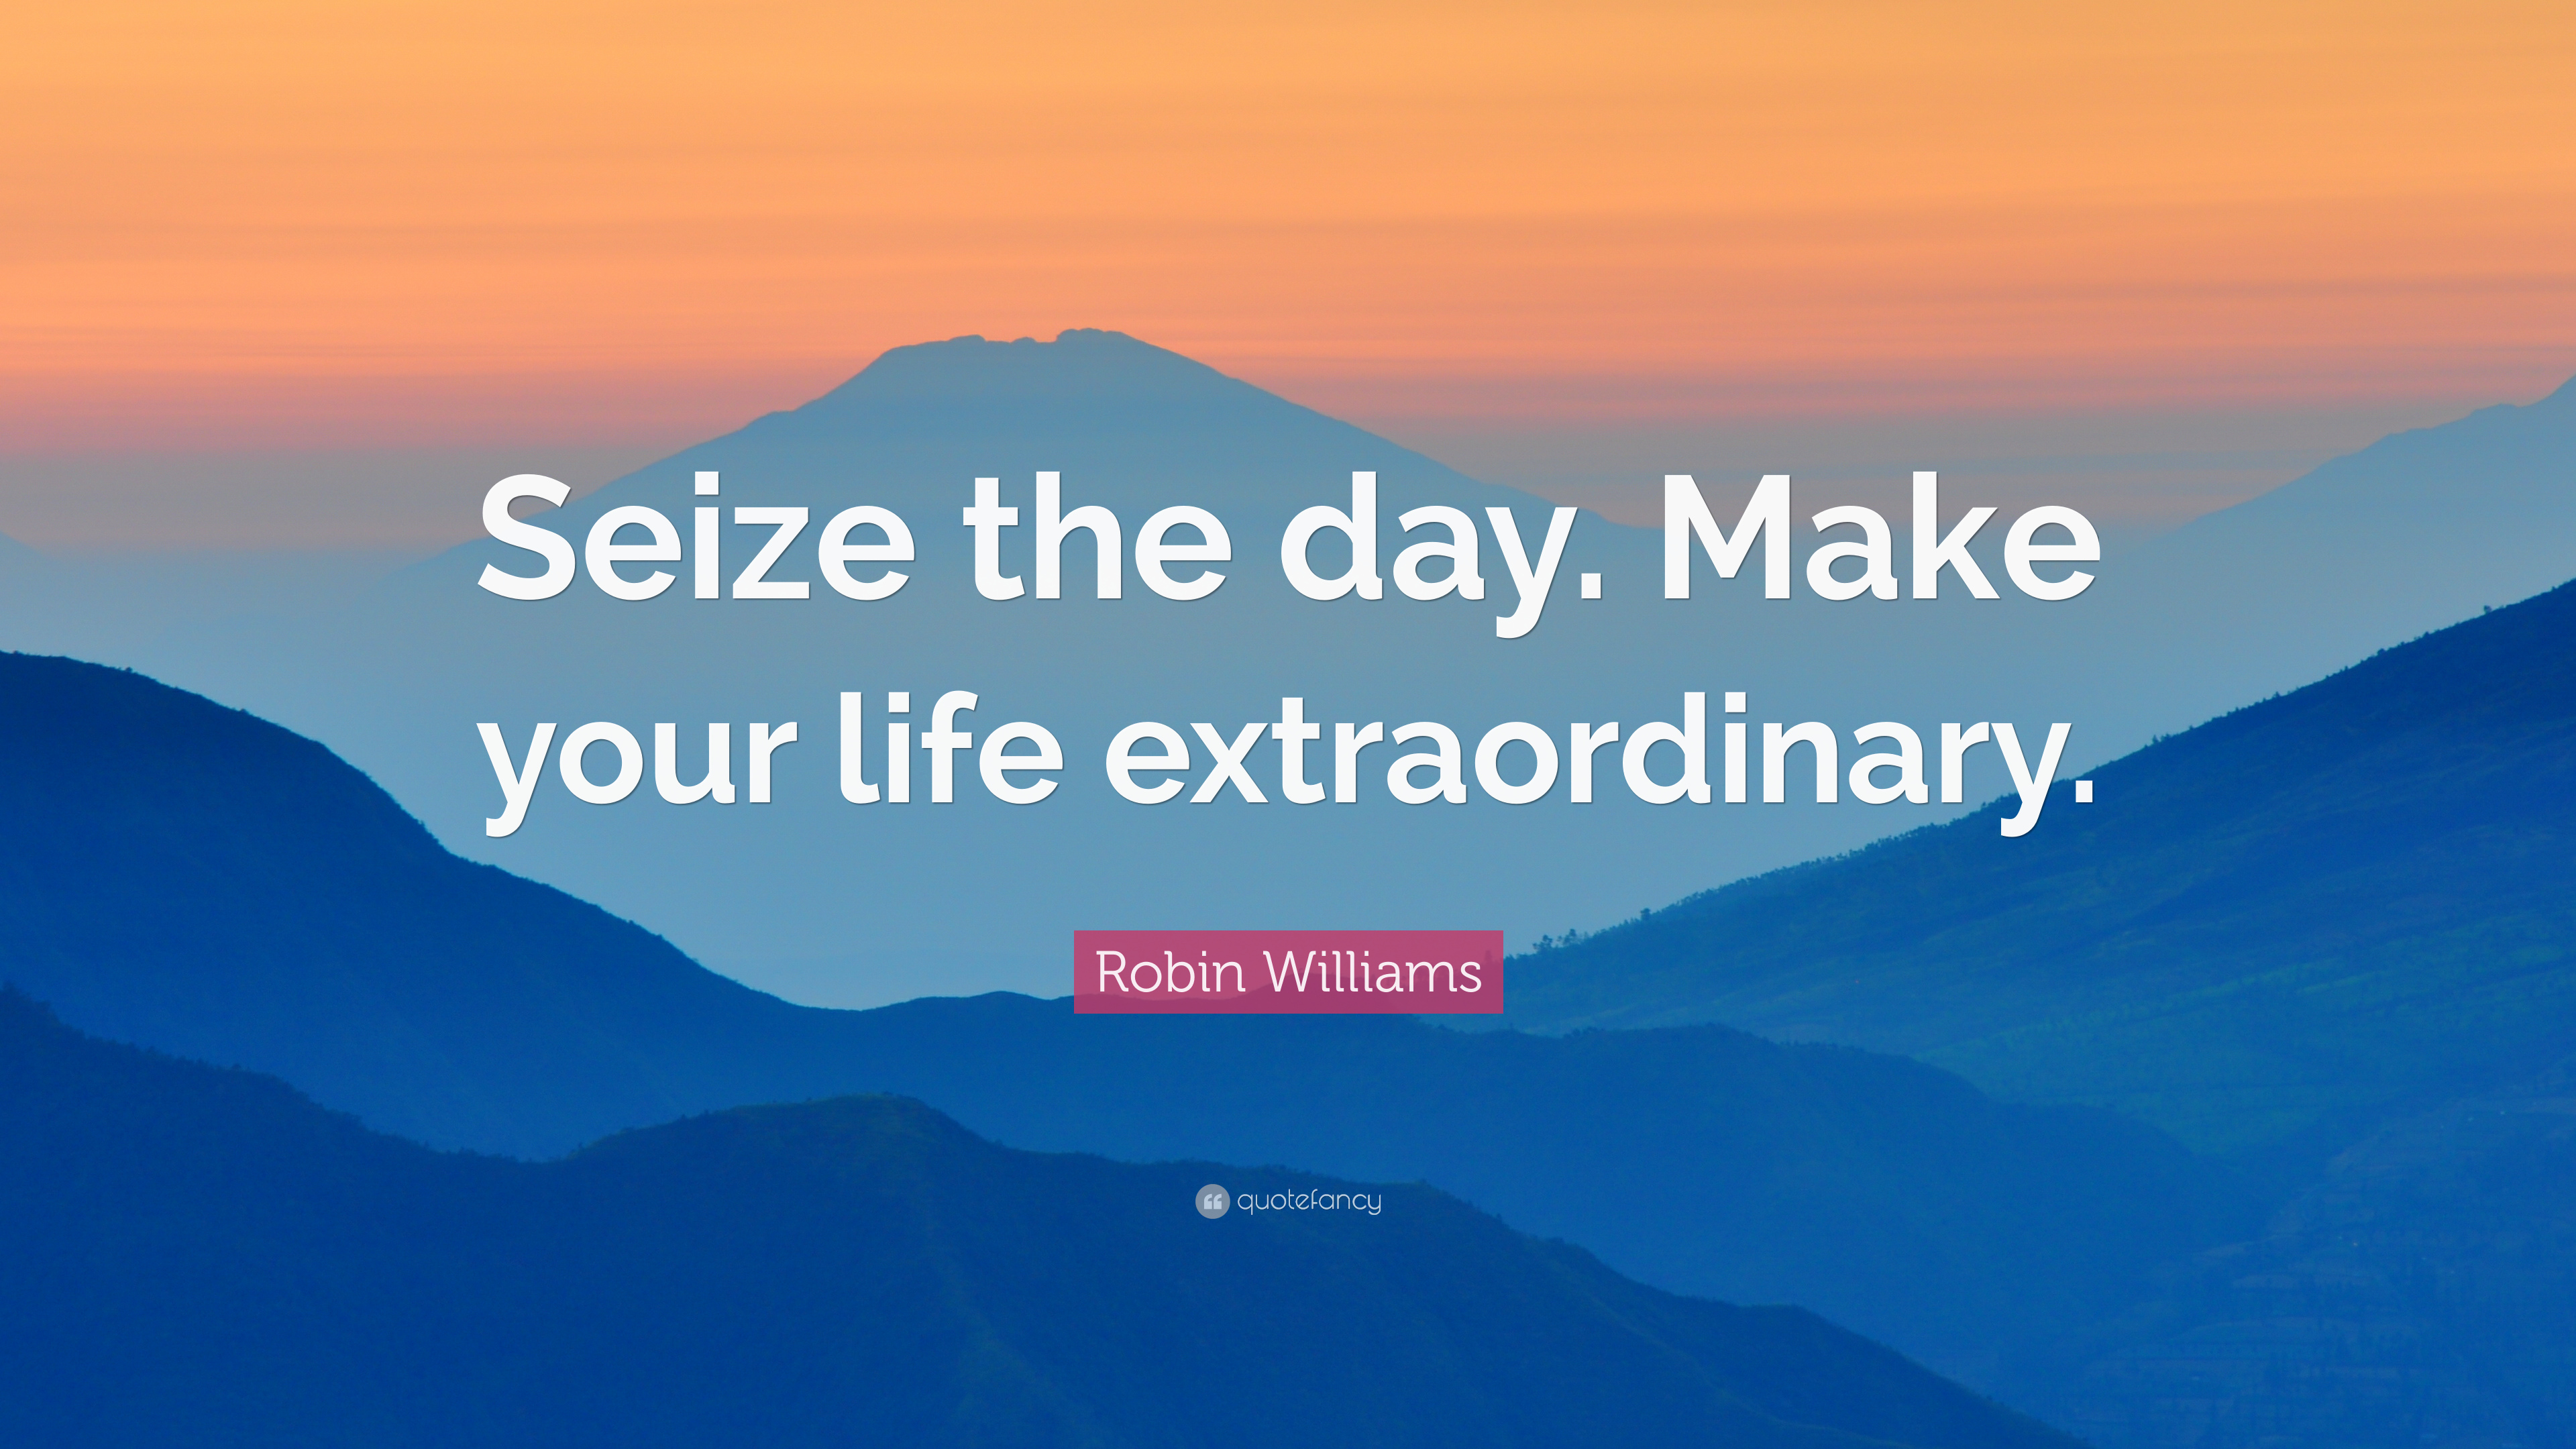 Robin Williams Quote Wallpapers Robin Williams Quote Seize The Day Make Your Life